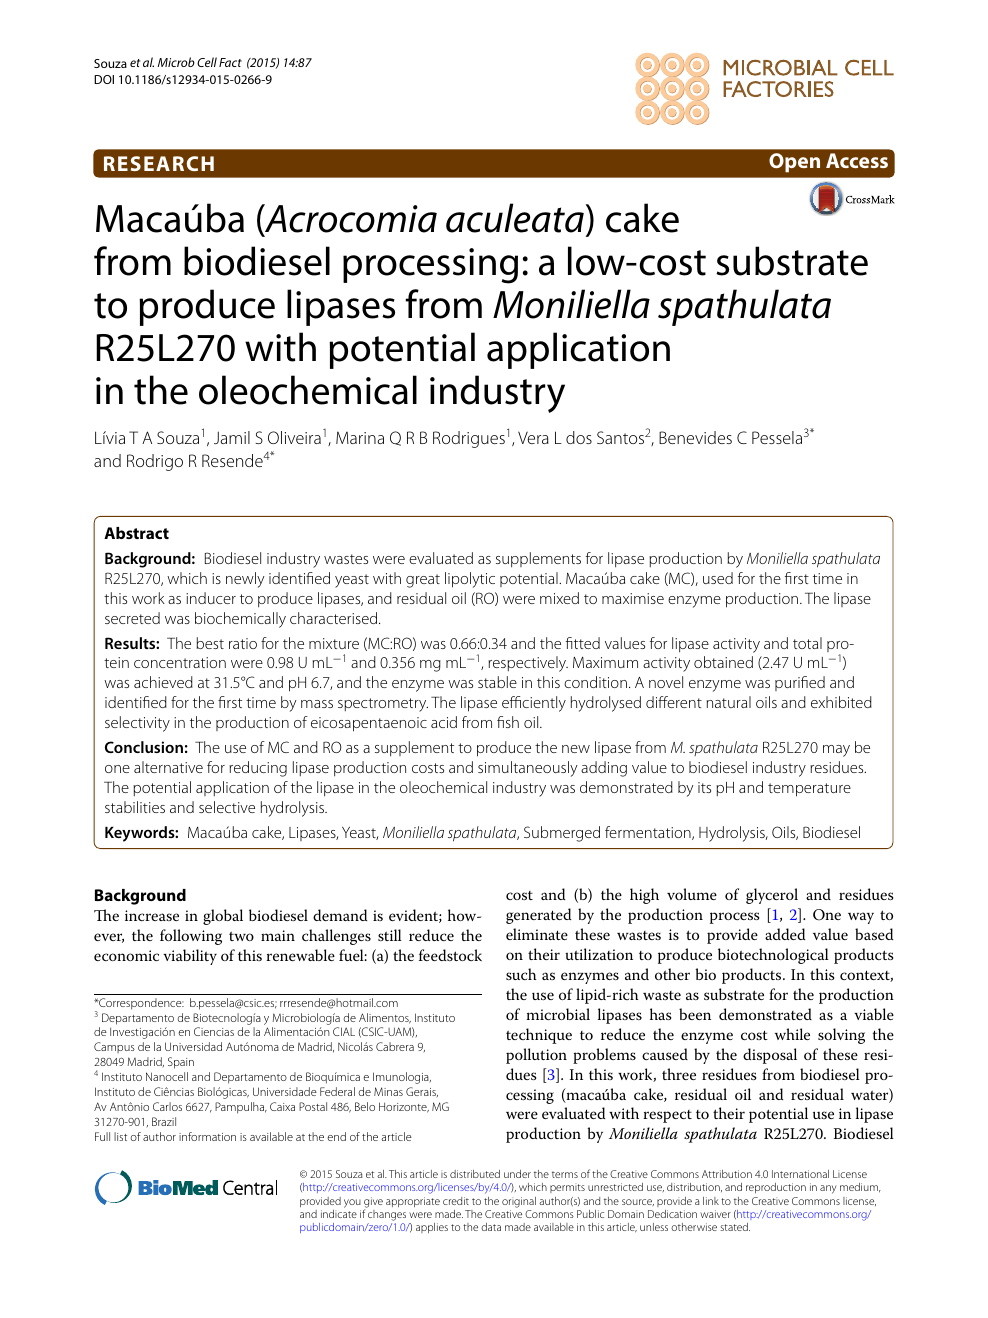 Macaúba (Acrocomia aculeata) cake from biodiesel processing